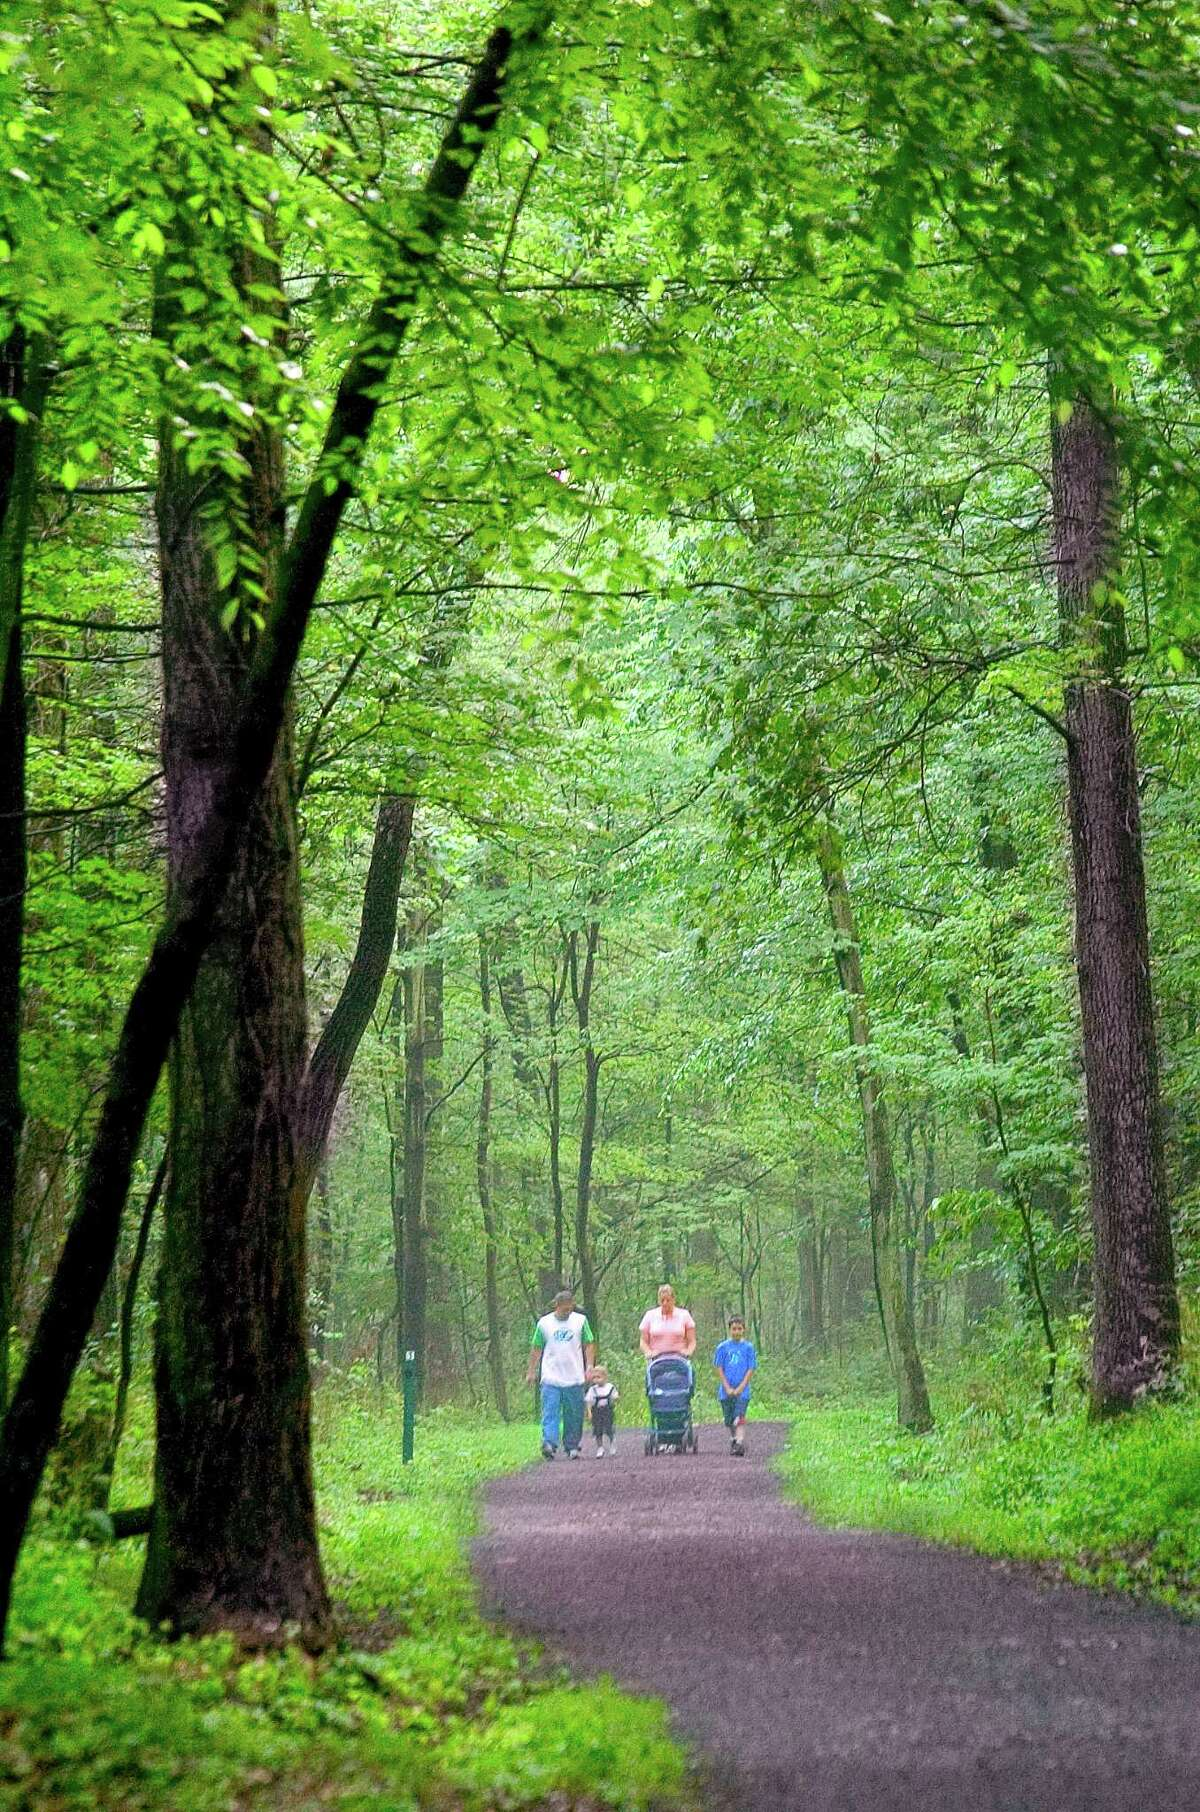 The North End Action Team hiking club, whose members have hiked extensively in Connecticut and New England, have two events coming up for children and families in Middletown.